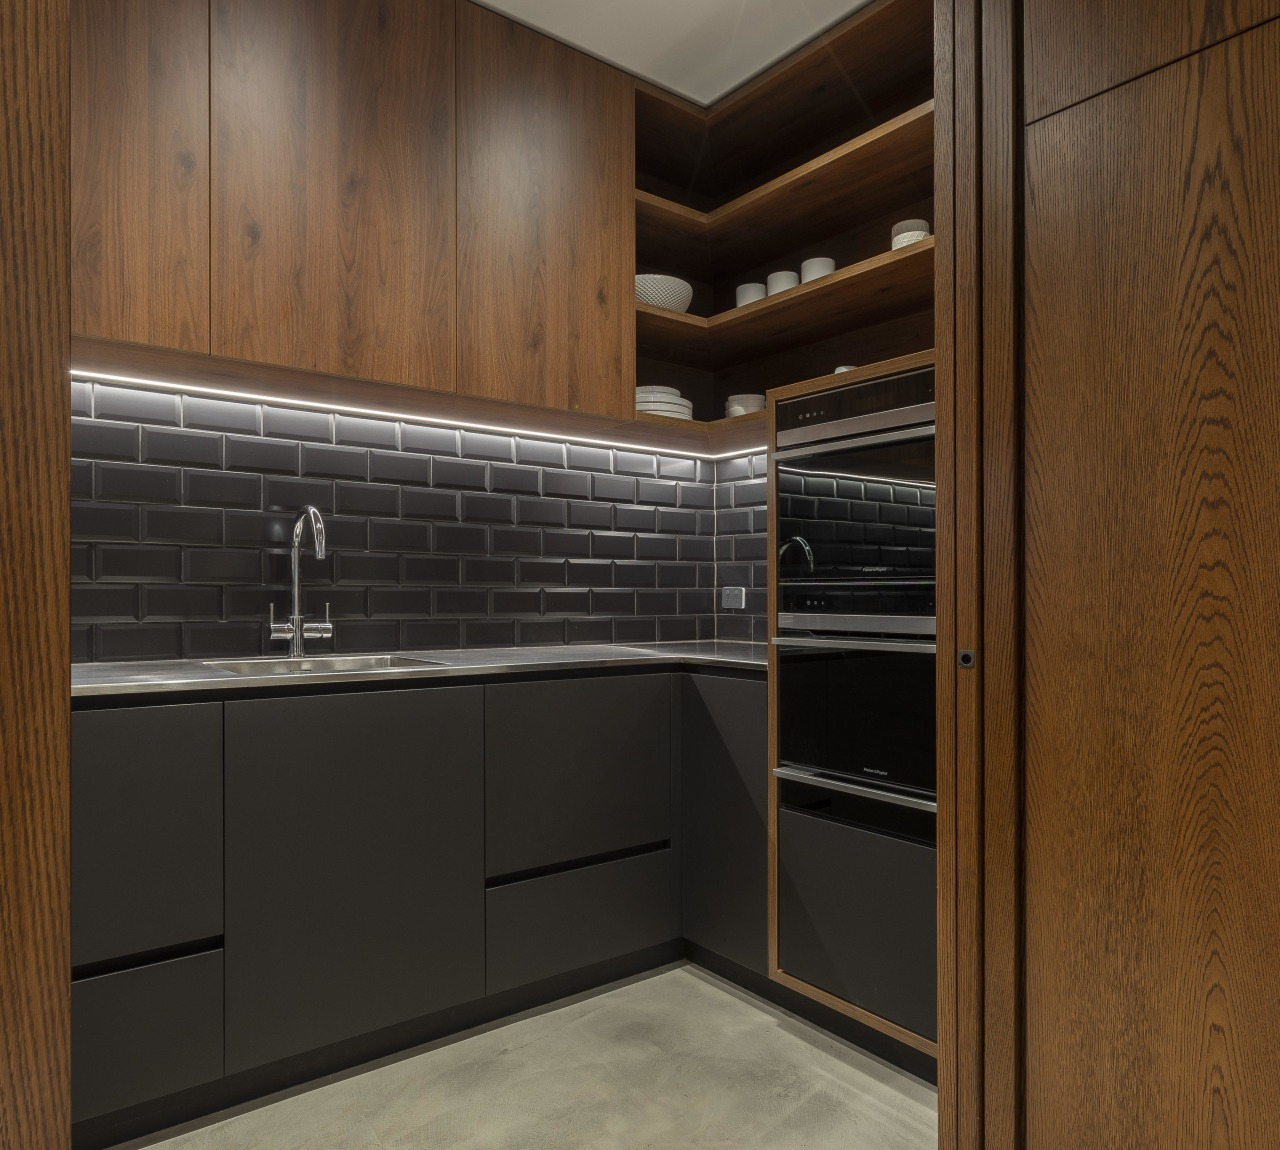 NZ3502 Cube Dentro 339000243 05 - architecture | architecture, building, cabinetry, closet, countertop, cupboard, floor, furniture, interior design, property, room, wood stain, brown, black